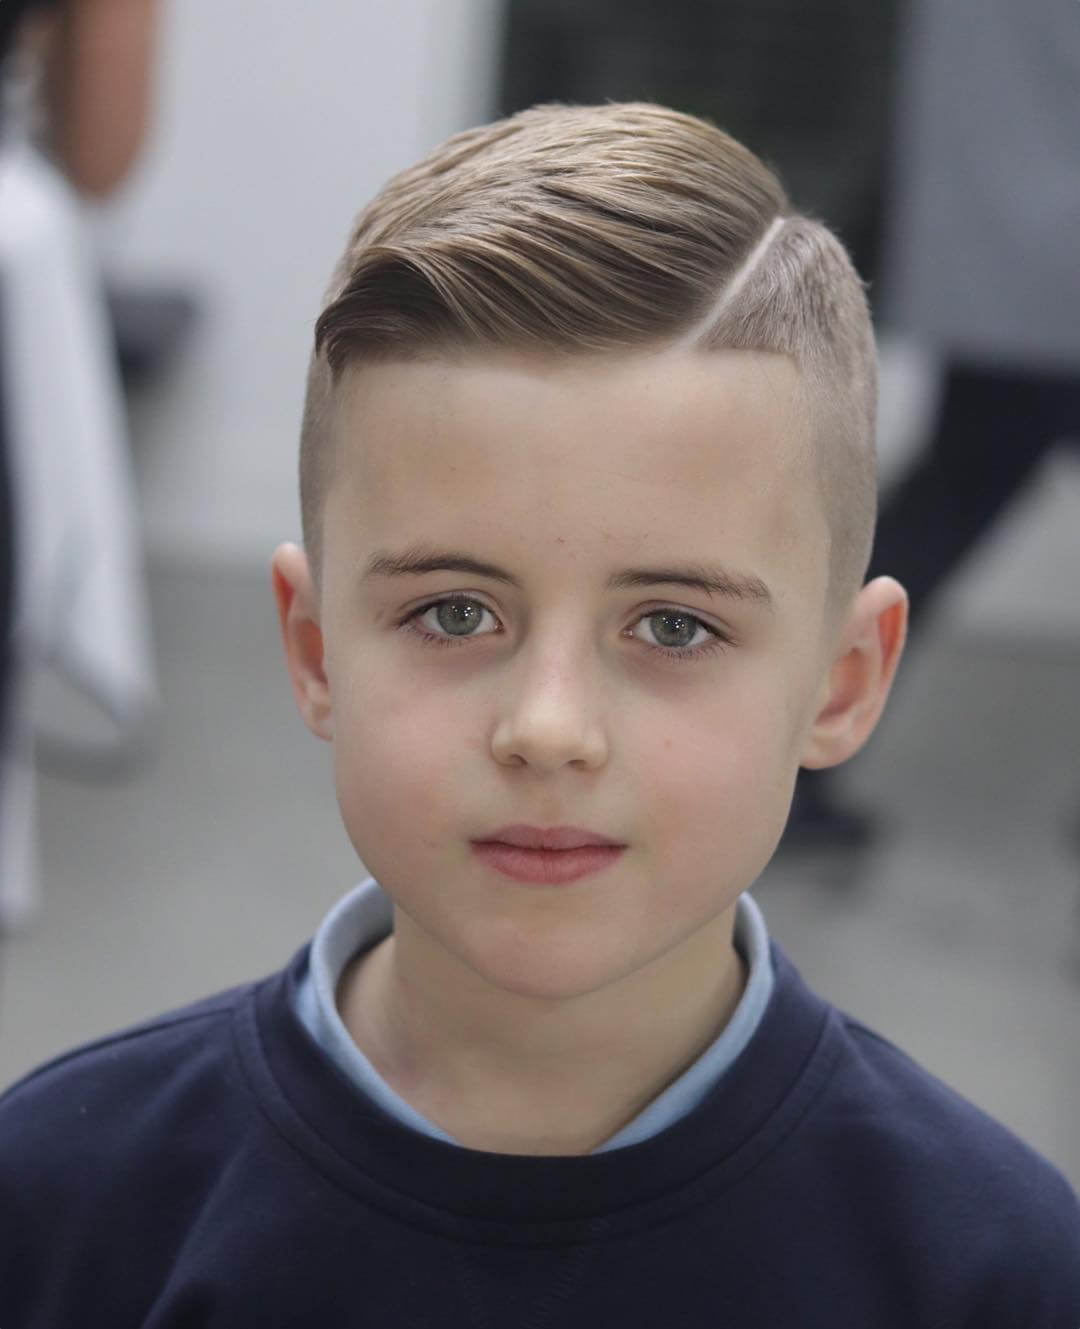 Short Haircuts for Boys Kids - 12+ » Short Haircuts Models